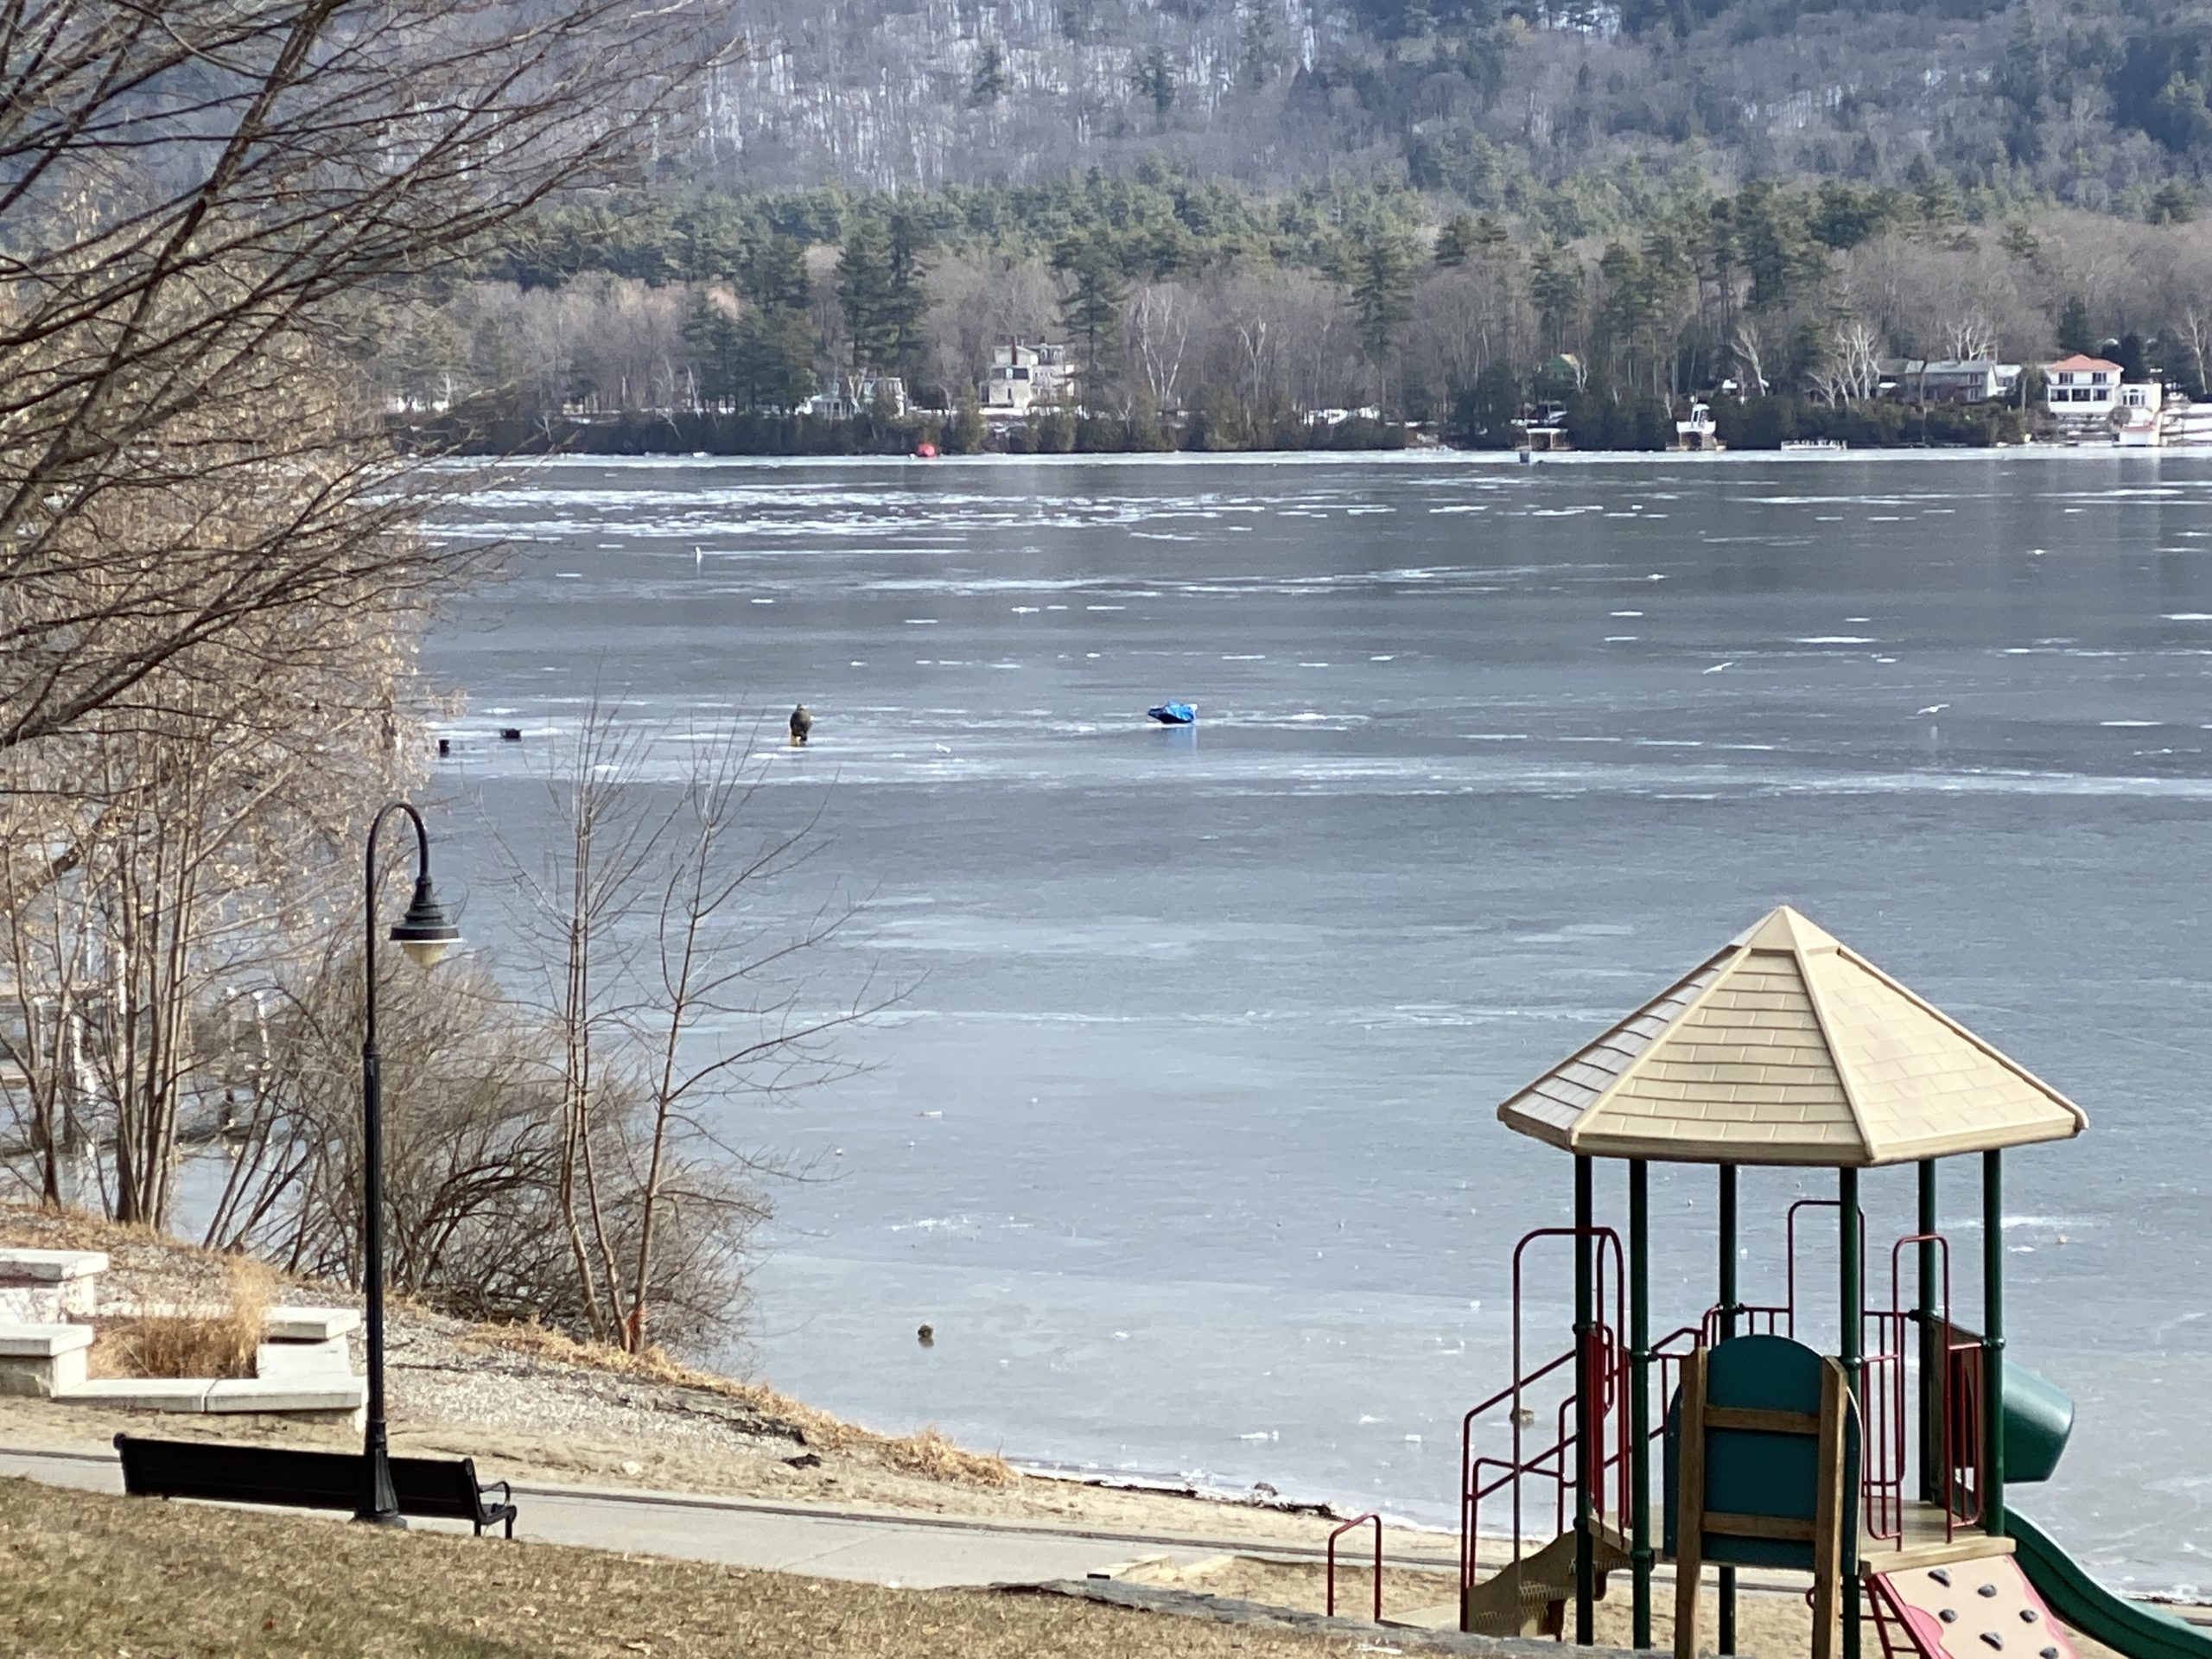 ice fishing on Lake George is a fun wintery thing to do